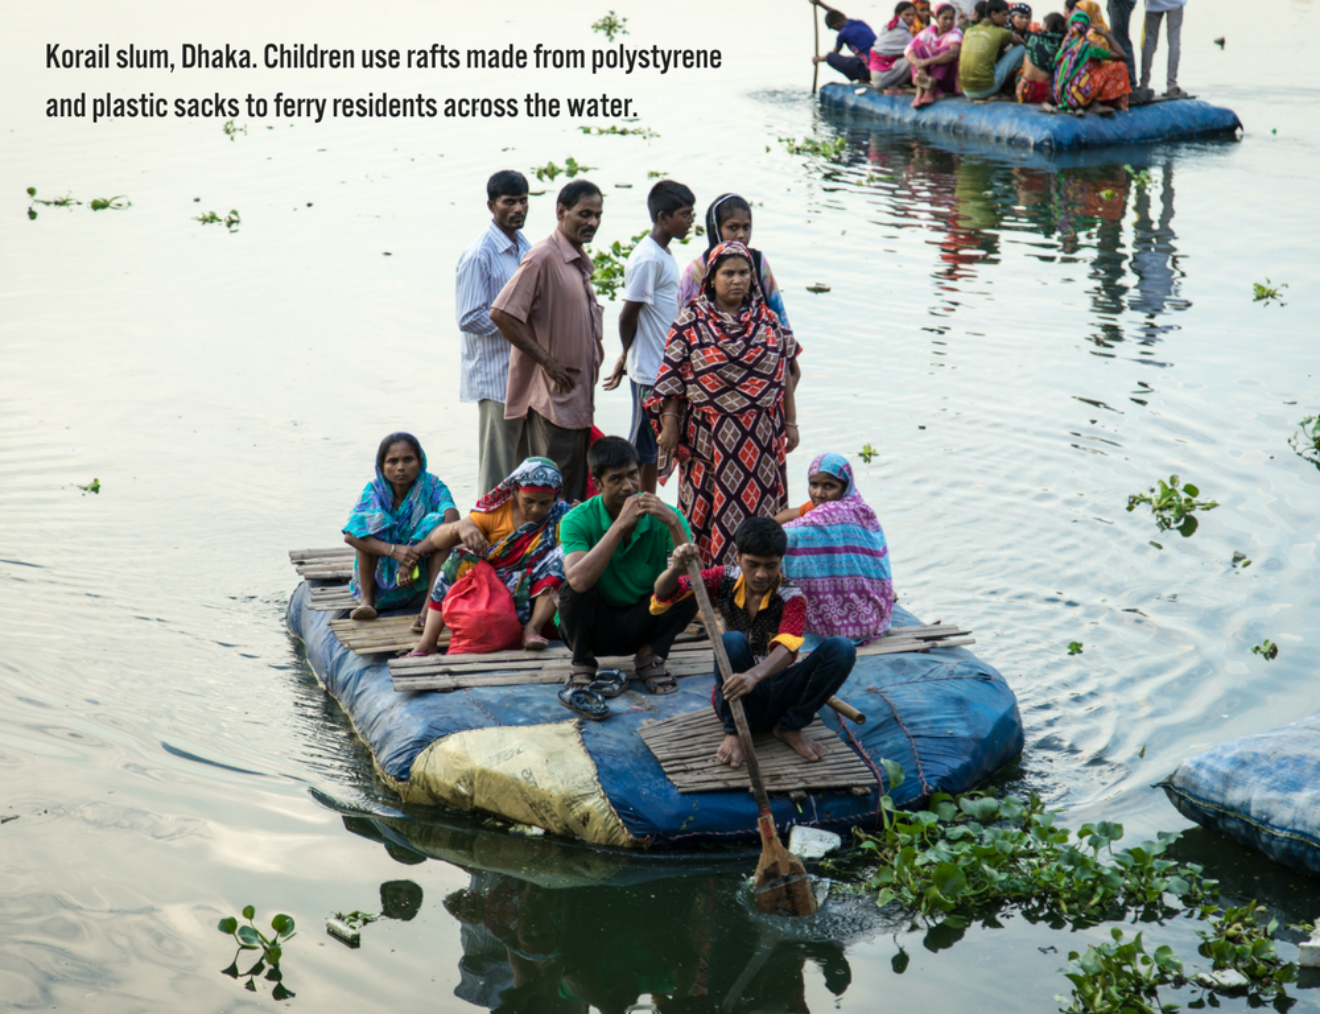 Korail Slum Dhaka  Children Use Rafts Made From Polystyrene And Plastic Sacks To Ferry Residents Across The Water